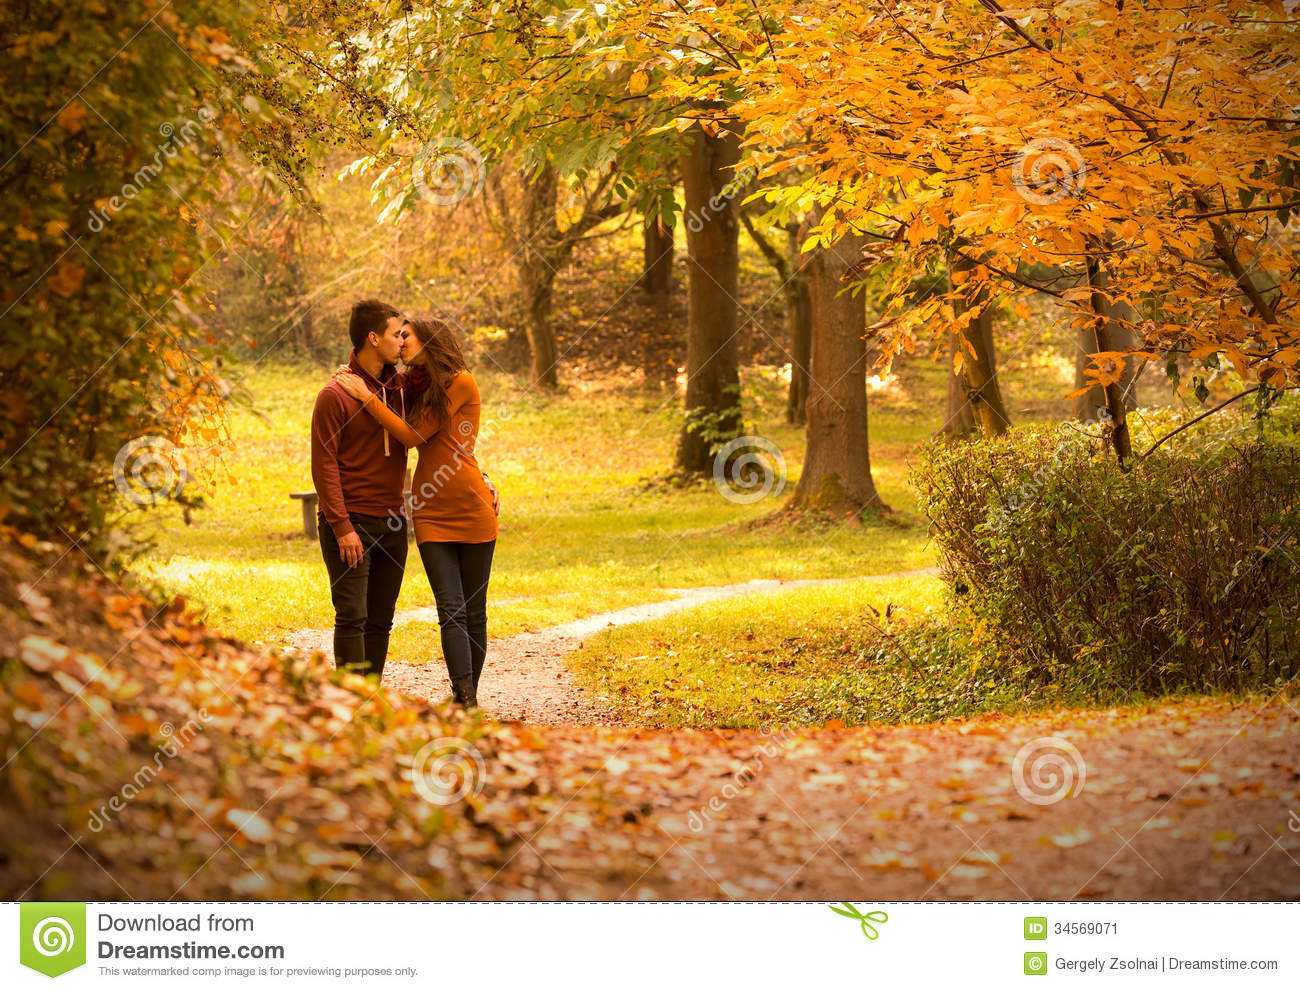 Fall Leaves Road Wallpaper Kiss Stock Image Image Of Caucasian Colorful Healthy